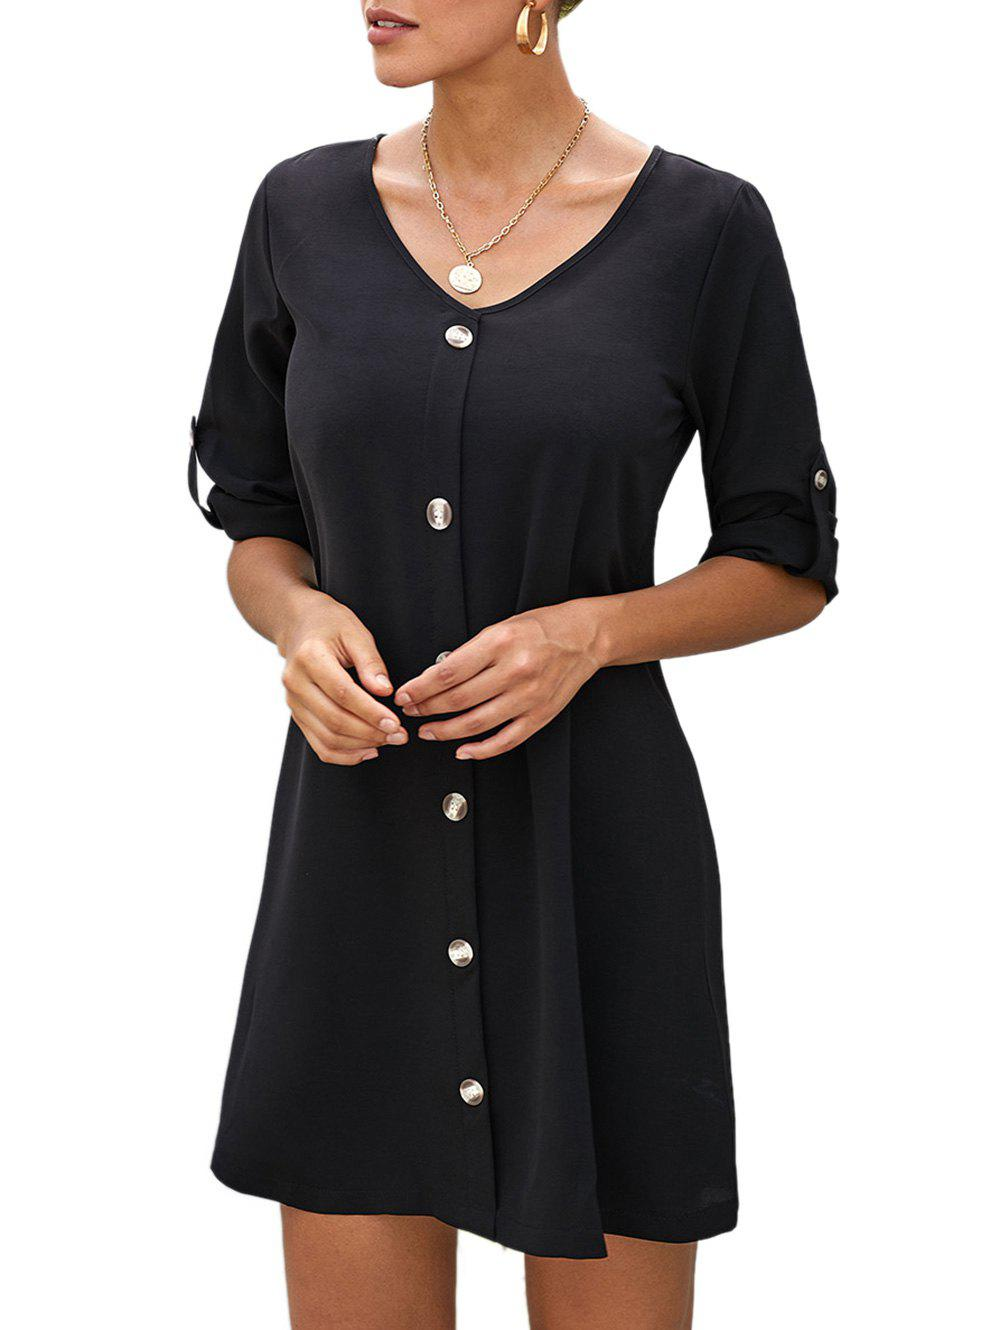 New Roll Button Sleeve Button Embellished Mini Dress